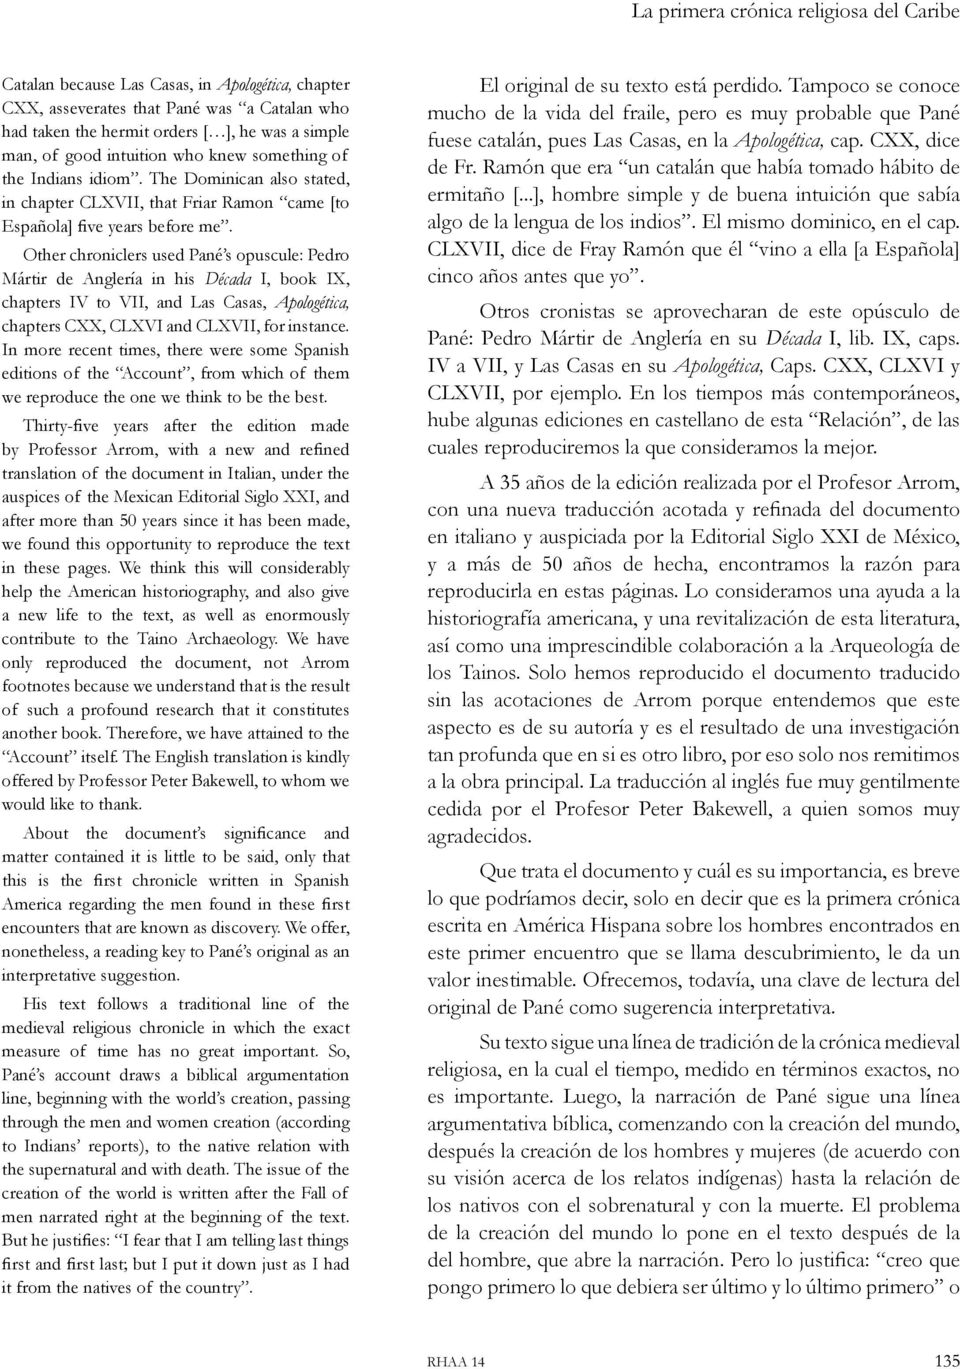 Other chroniclers used Pané s opuscule: Pedro Mártir de Anglería in his Década I, book IX, chapters IV to VII, and Las Casas, Apologética, chapters CXX, CLXVI and CLXVII, for instance.